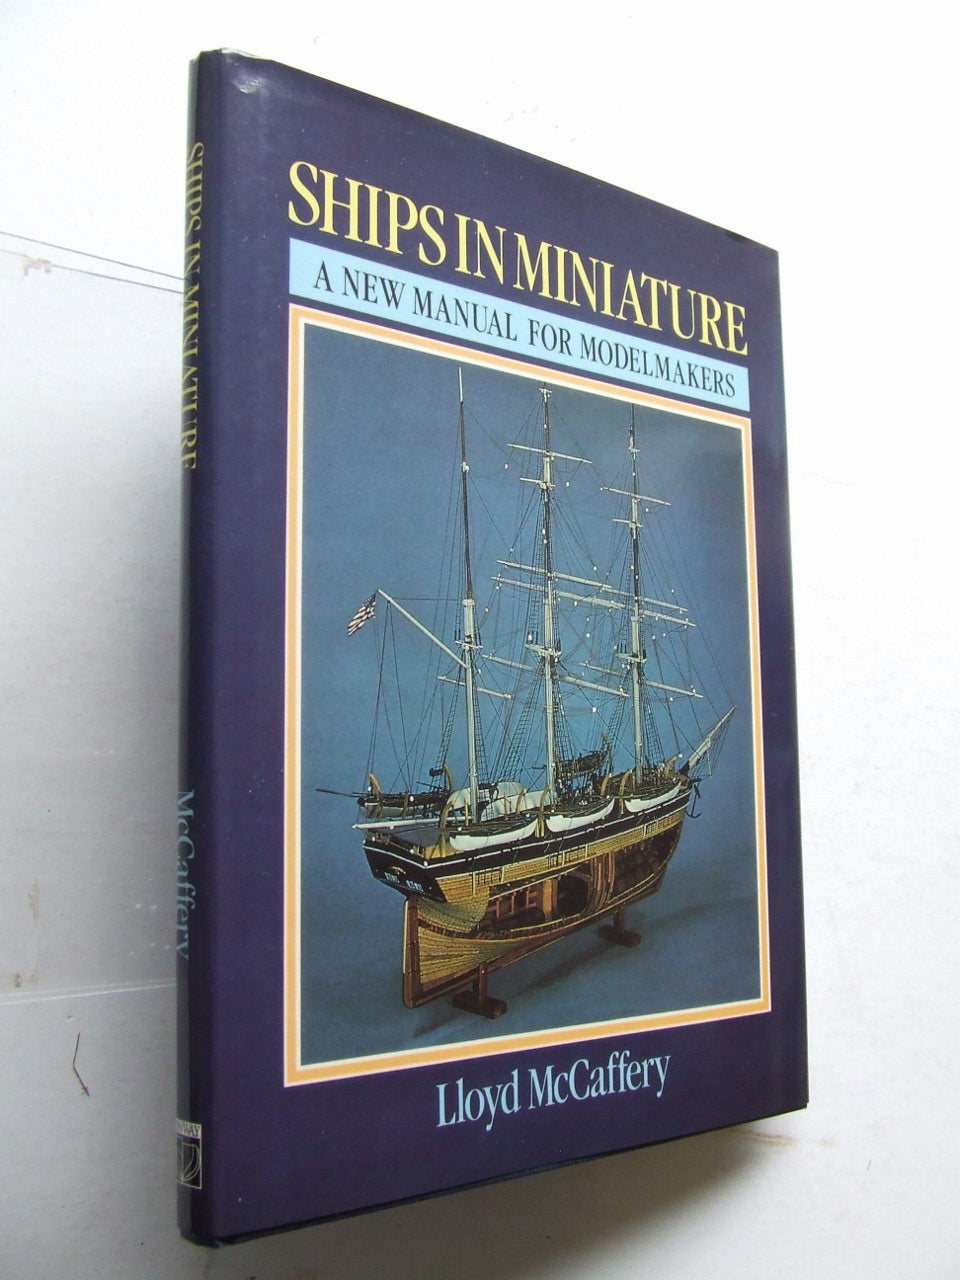 Ships in Miniature, a new manual for modelmakers